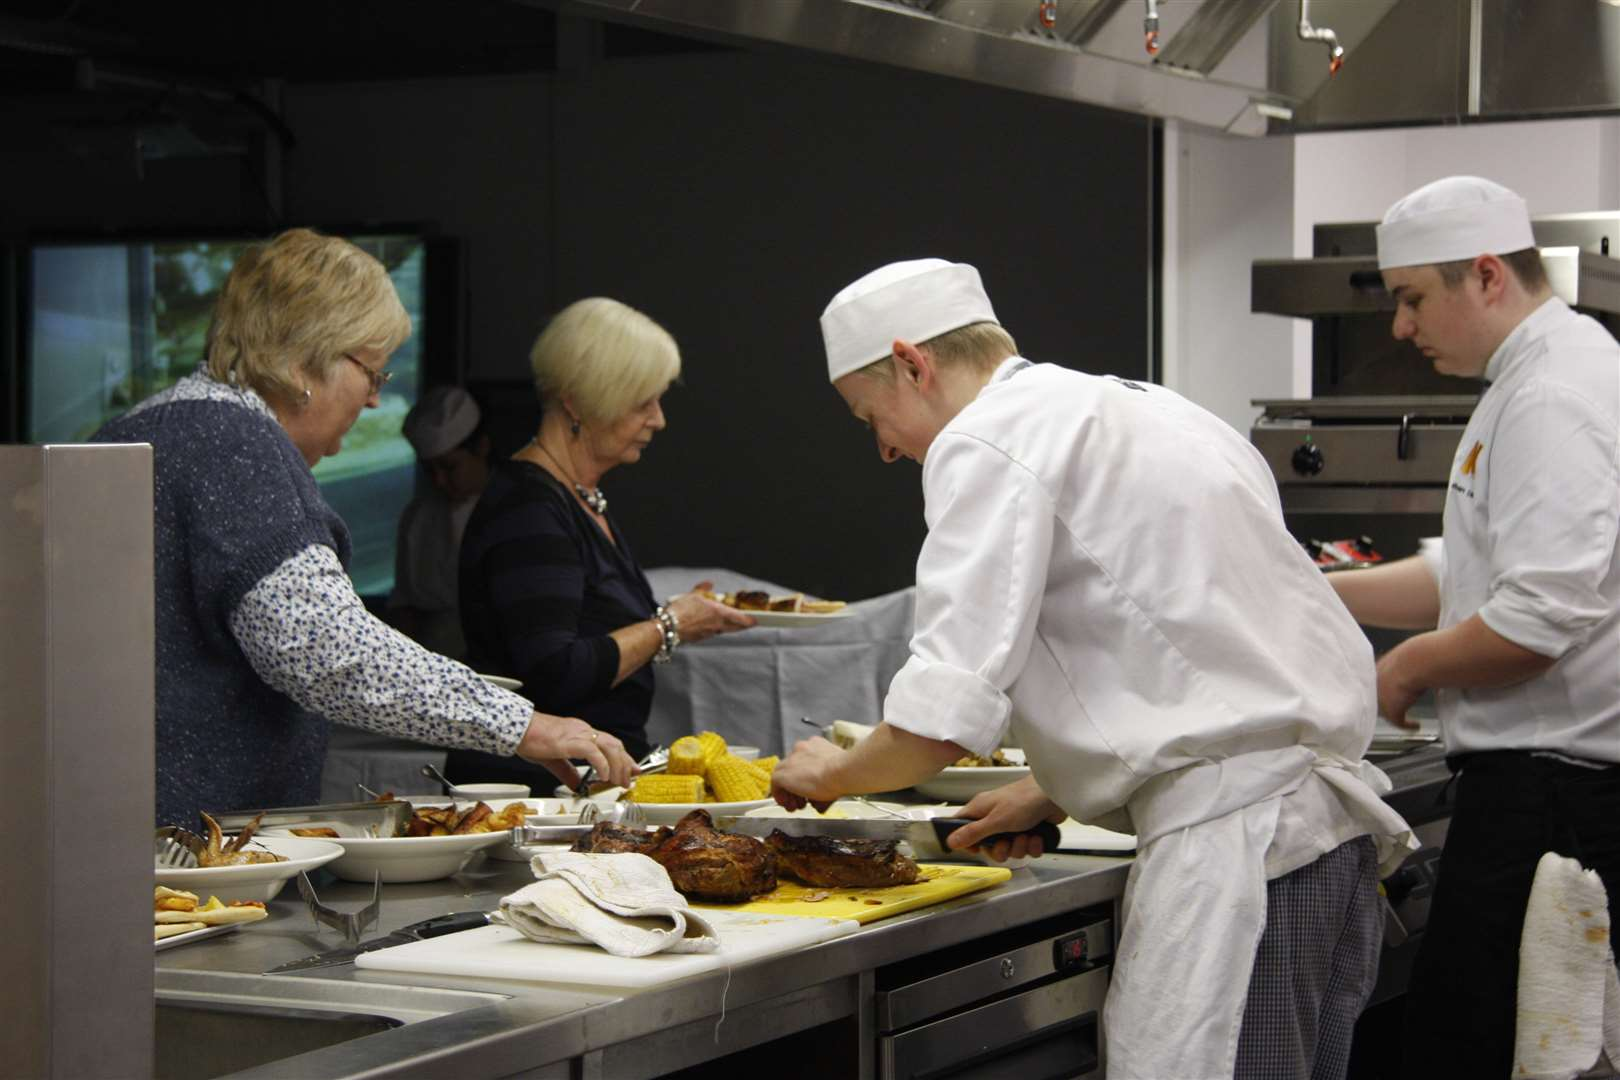 Hospitality apprentices at work